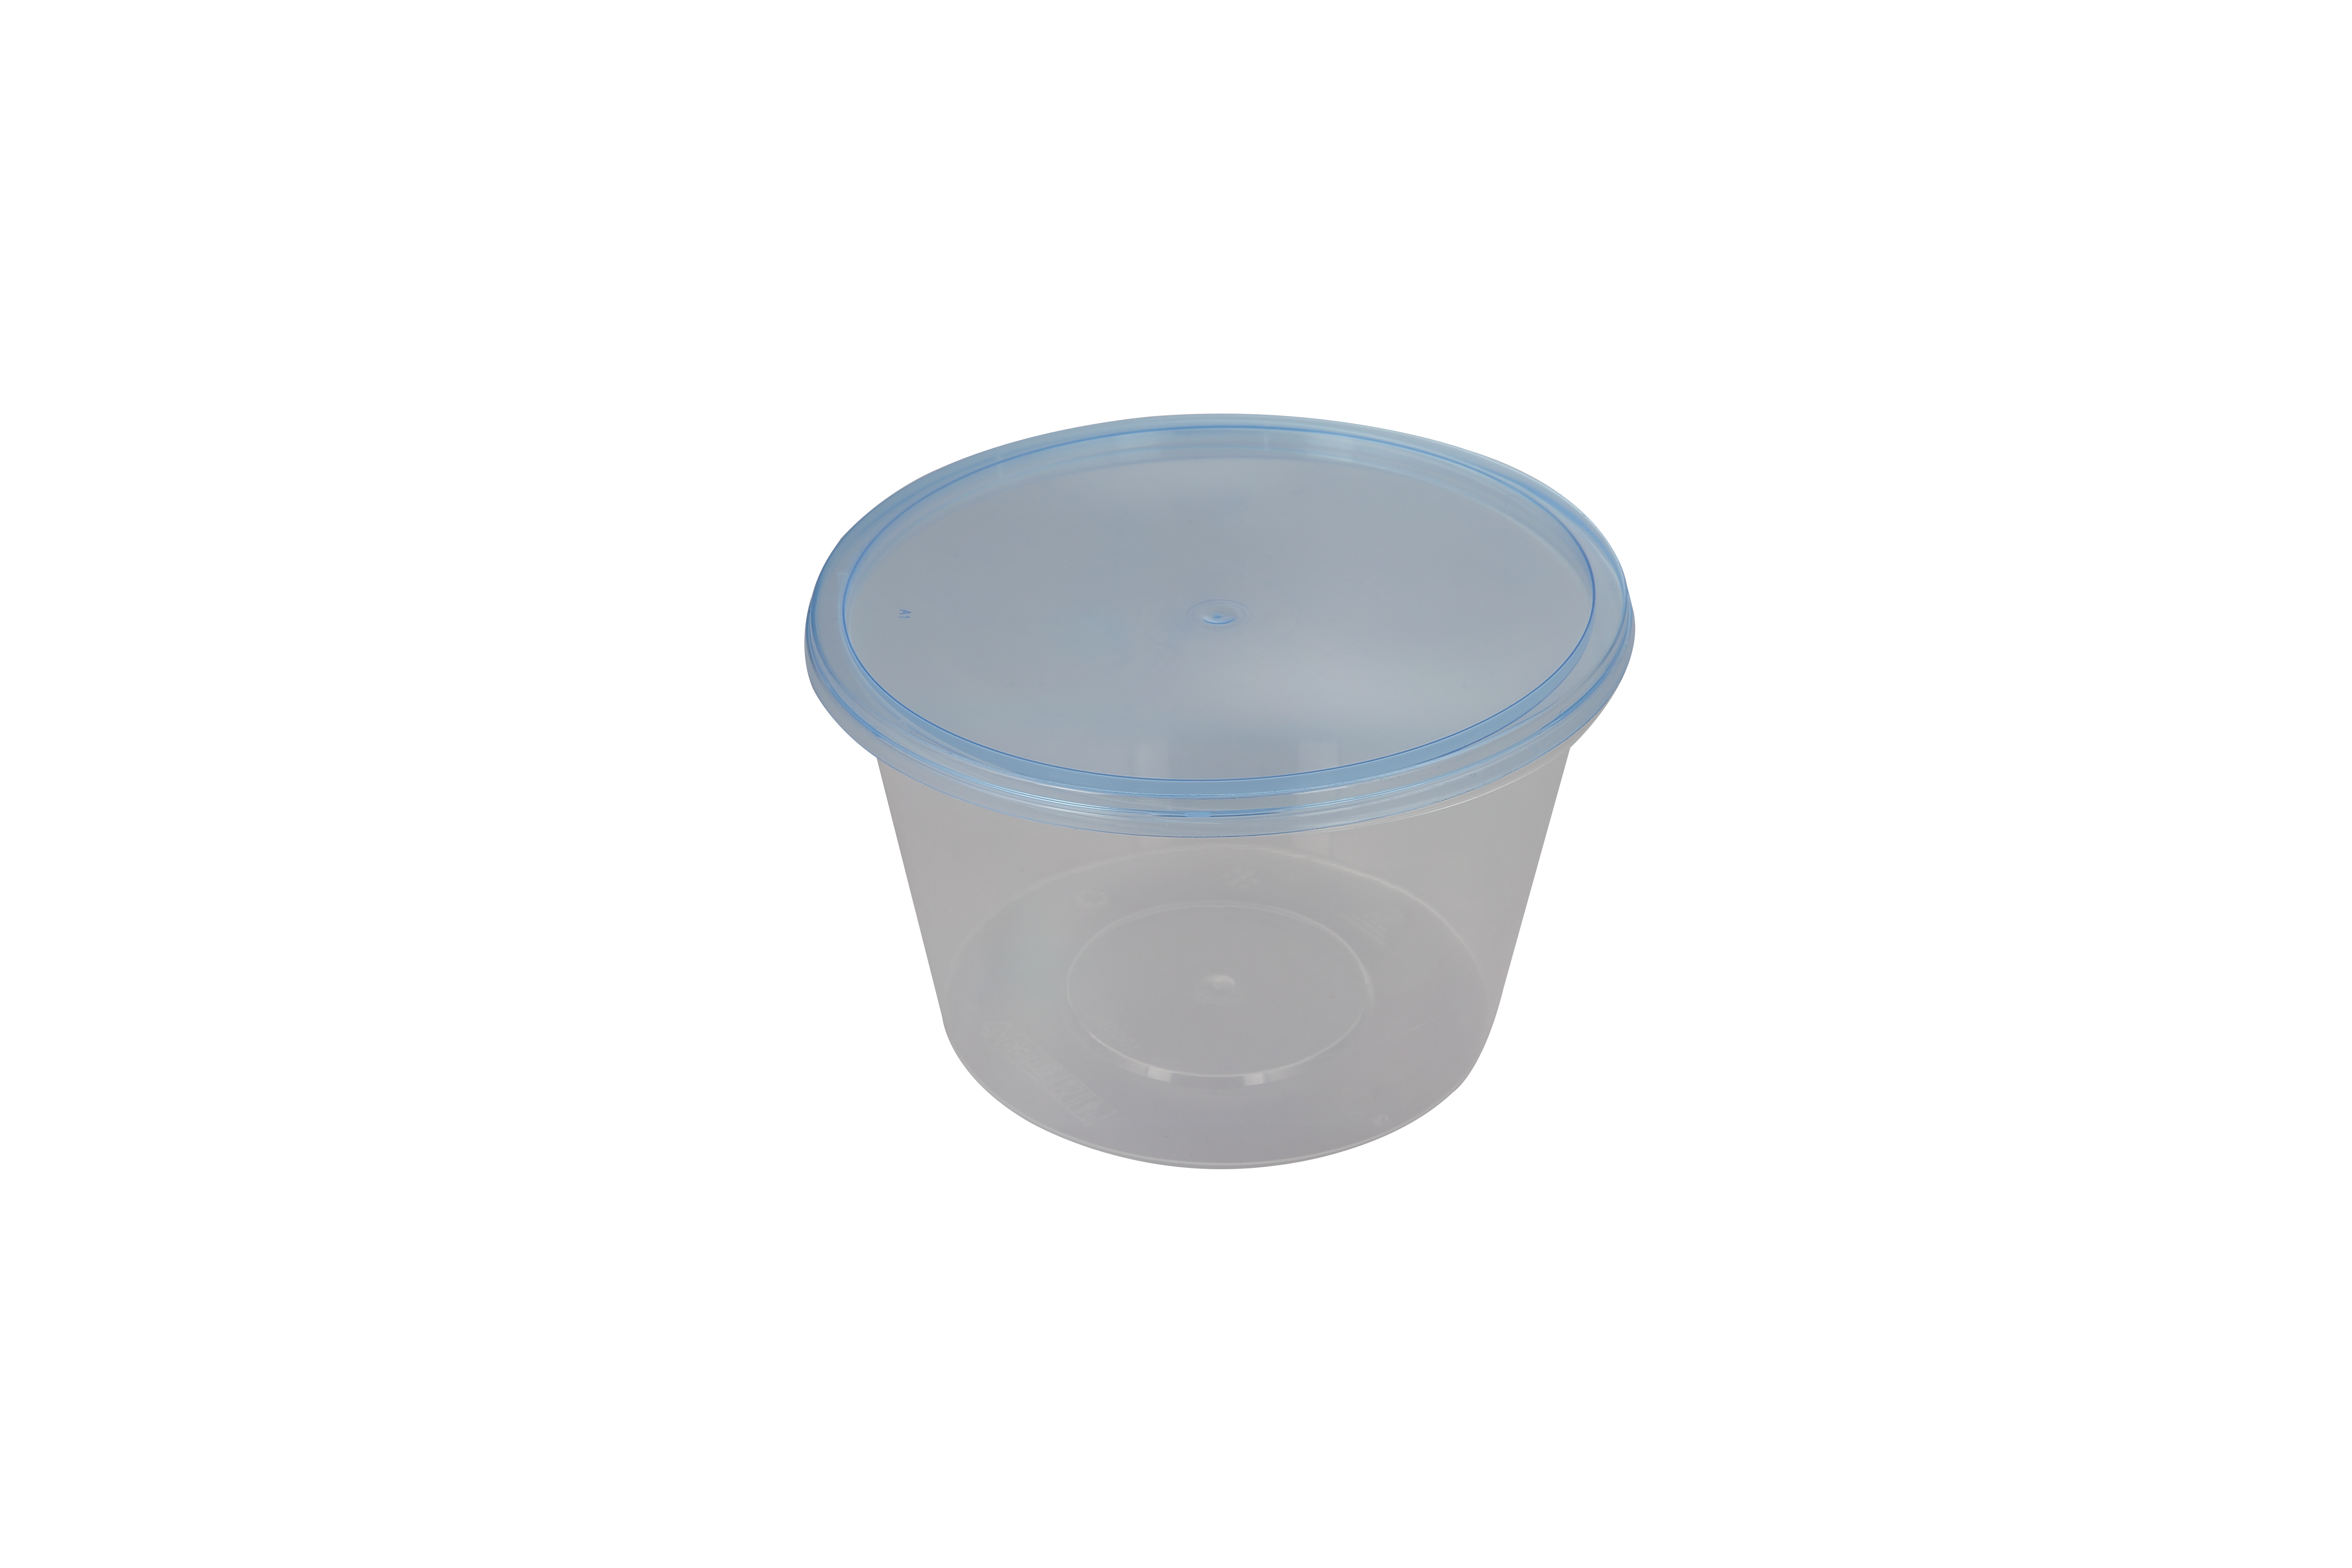 Rfl Container Rfl Plastic Container Manufacturer In